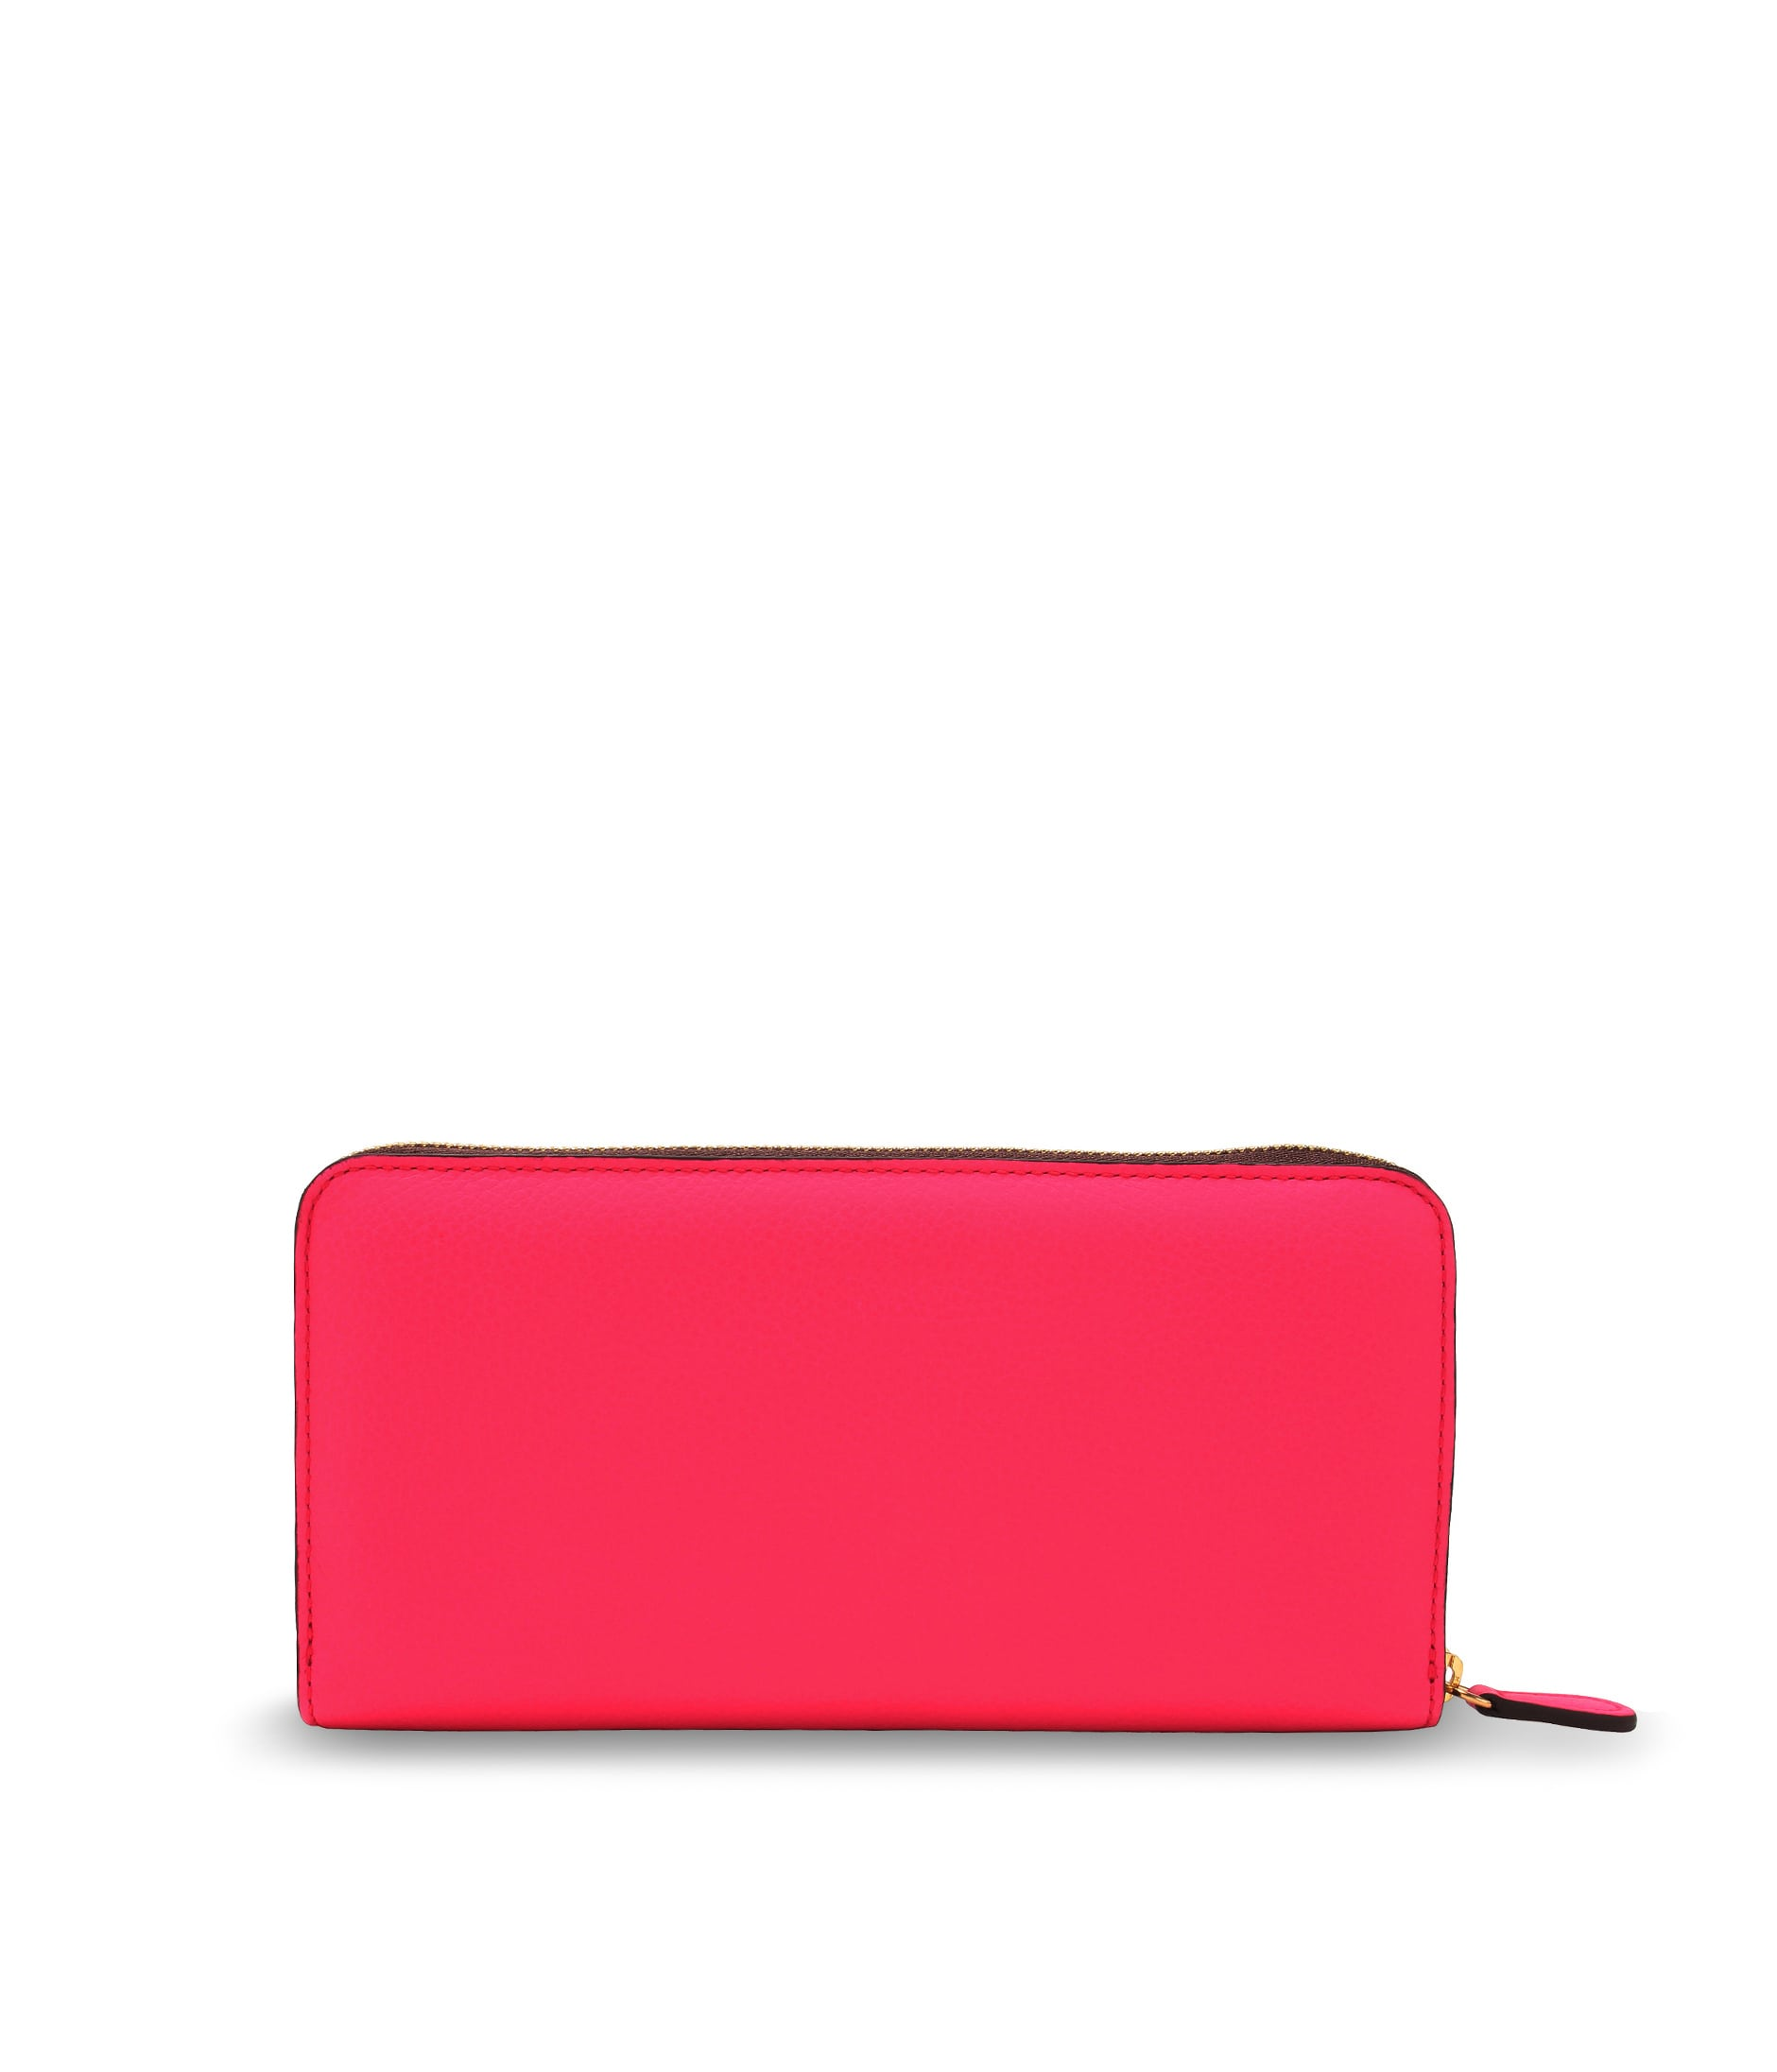 LONG ZIP WALLET 詳細画像 COSMOS PINK 2